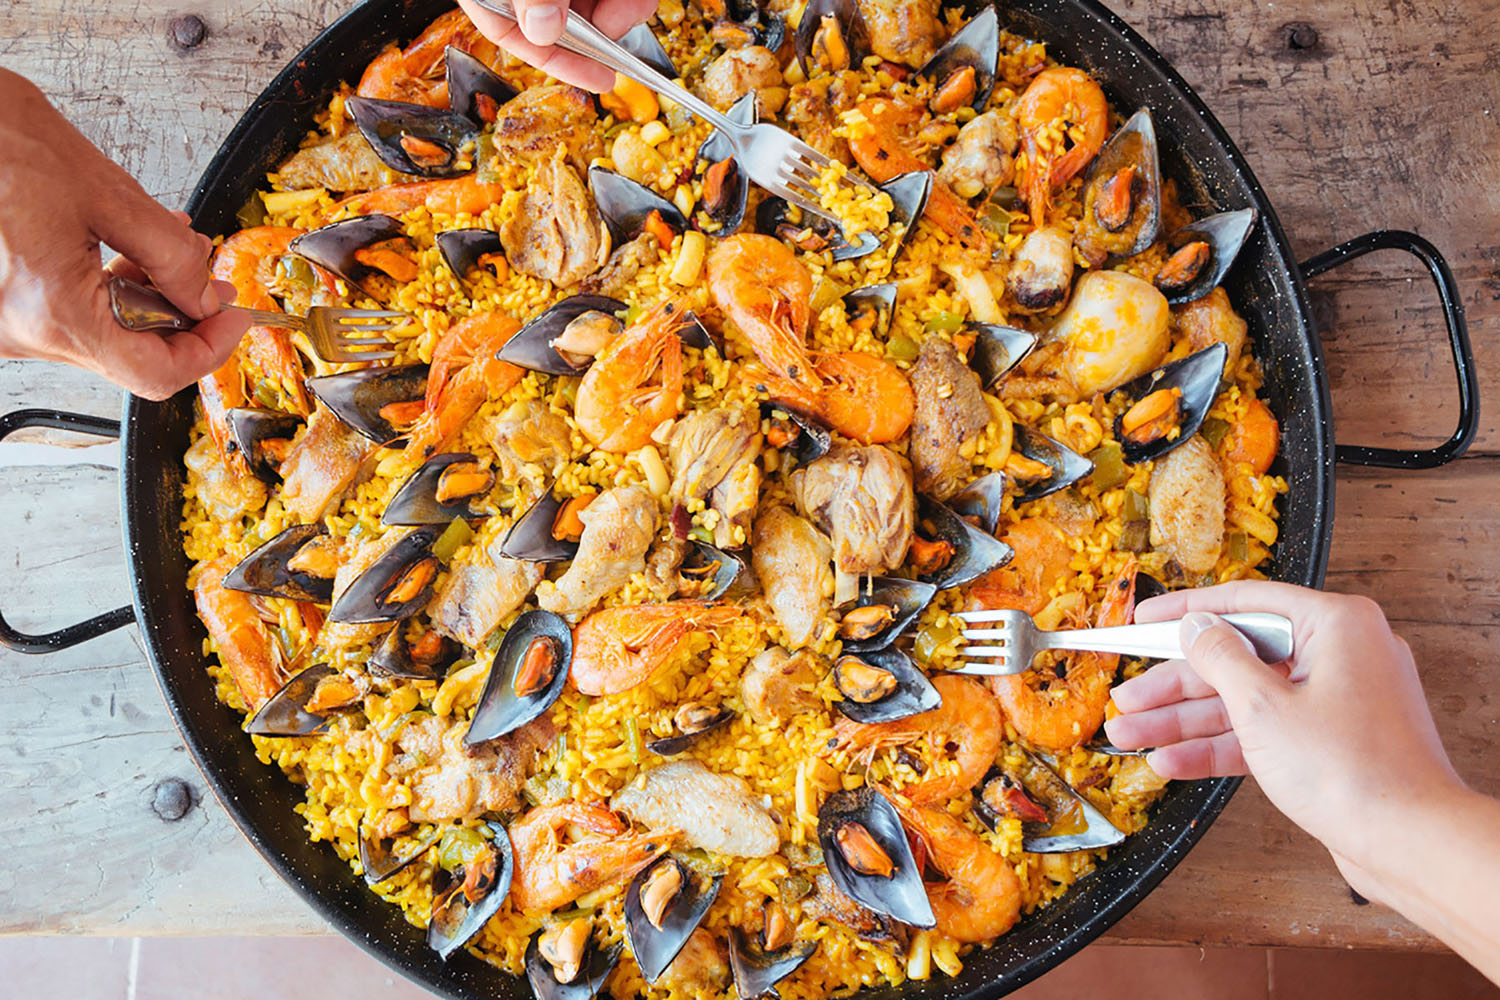 A dish of Spanish paella.